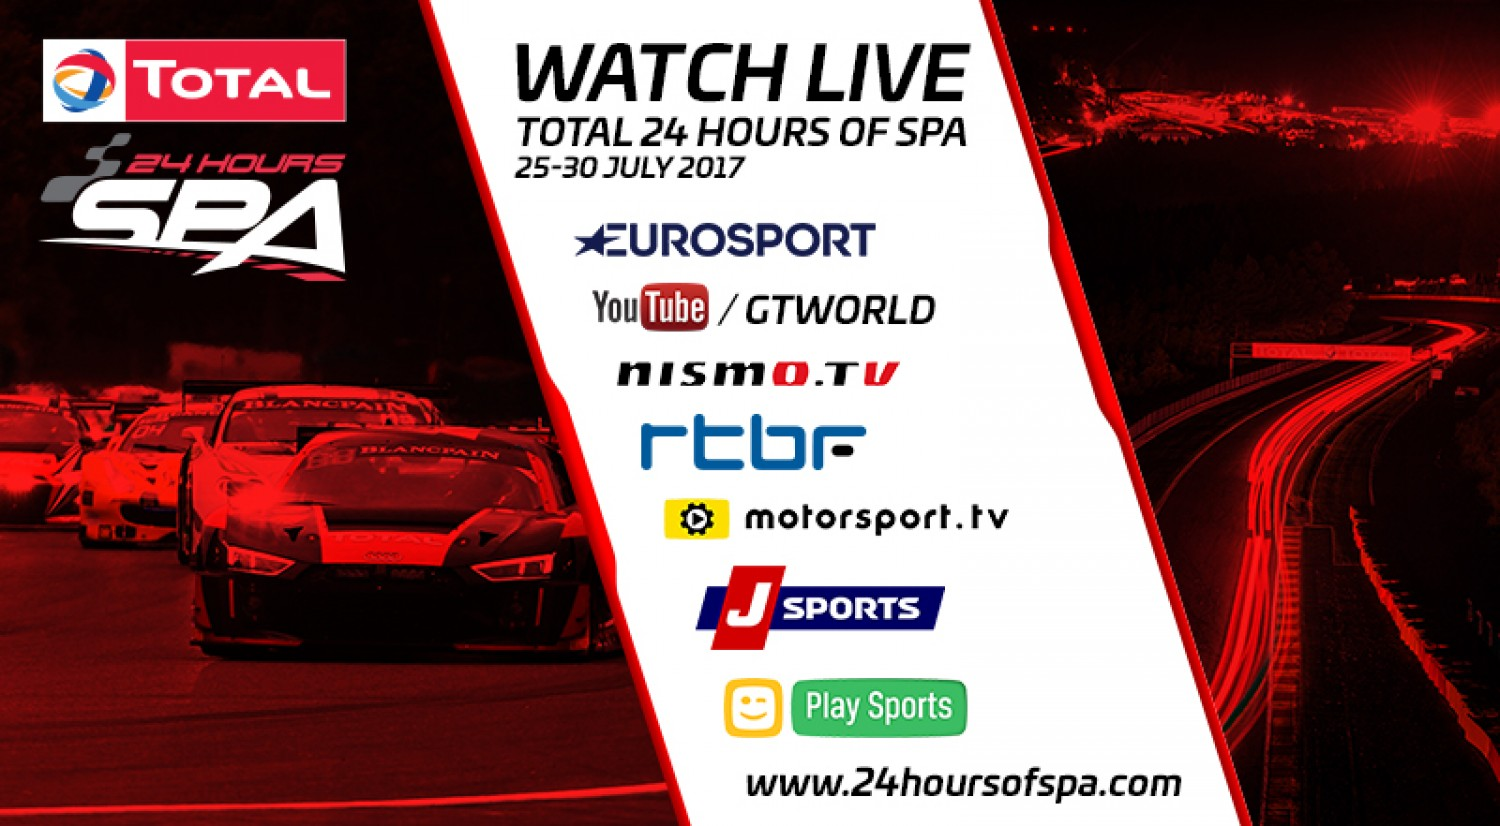 Immerse yourself in the Total 24 Hours of Spa